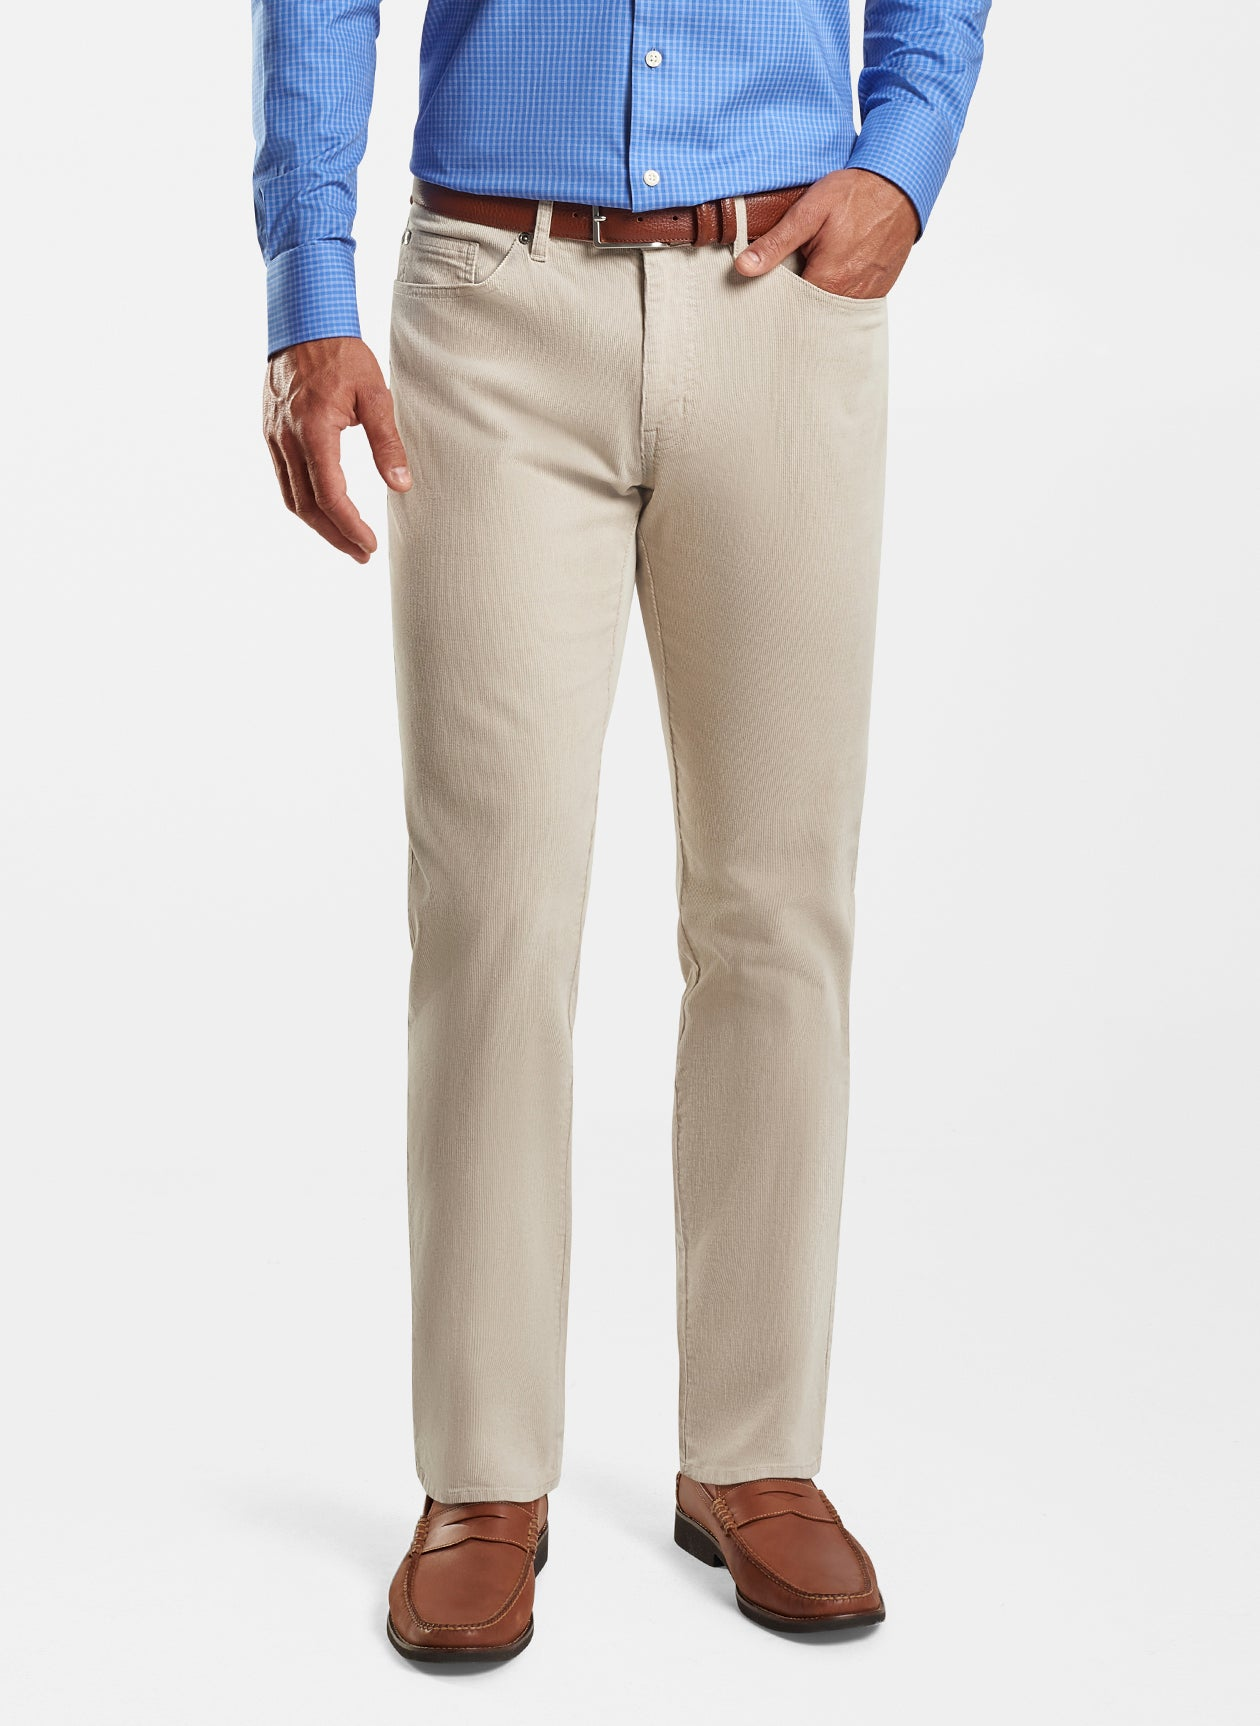 Superior Soft Corduroy Five-Pocket Pant in Stone